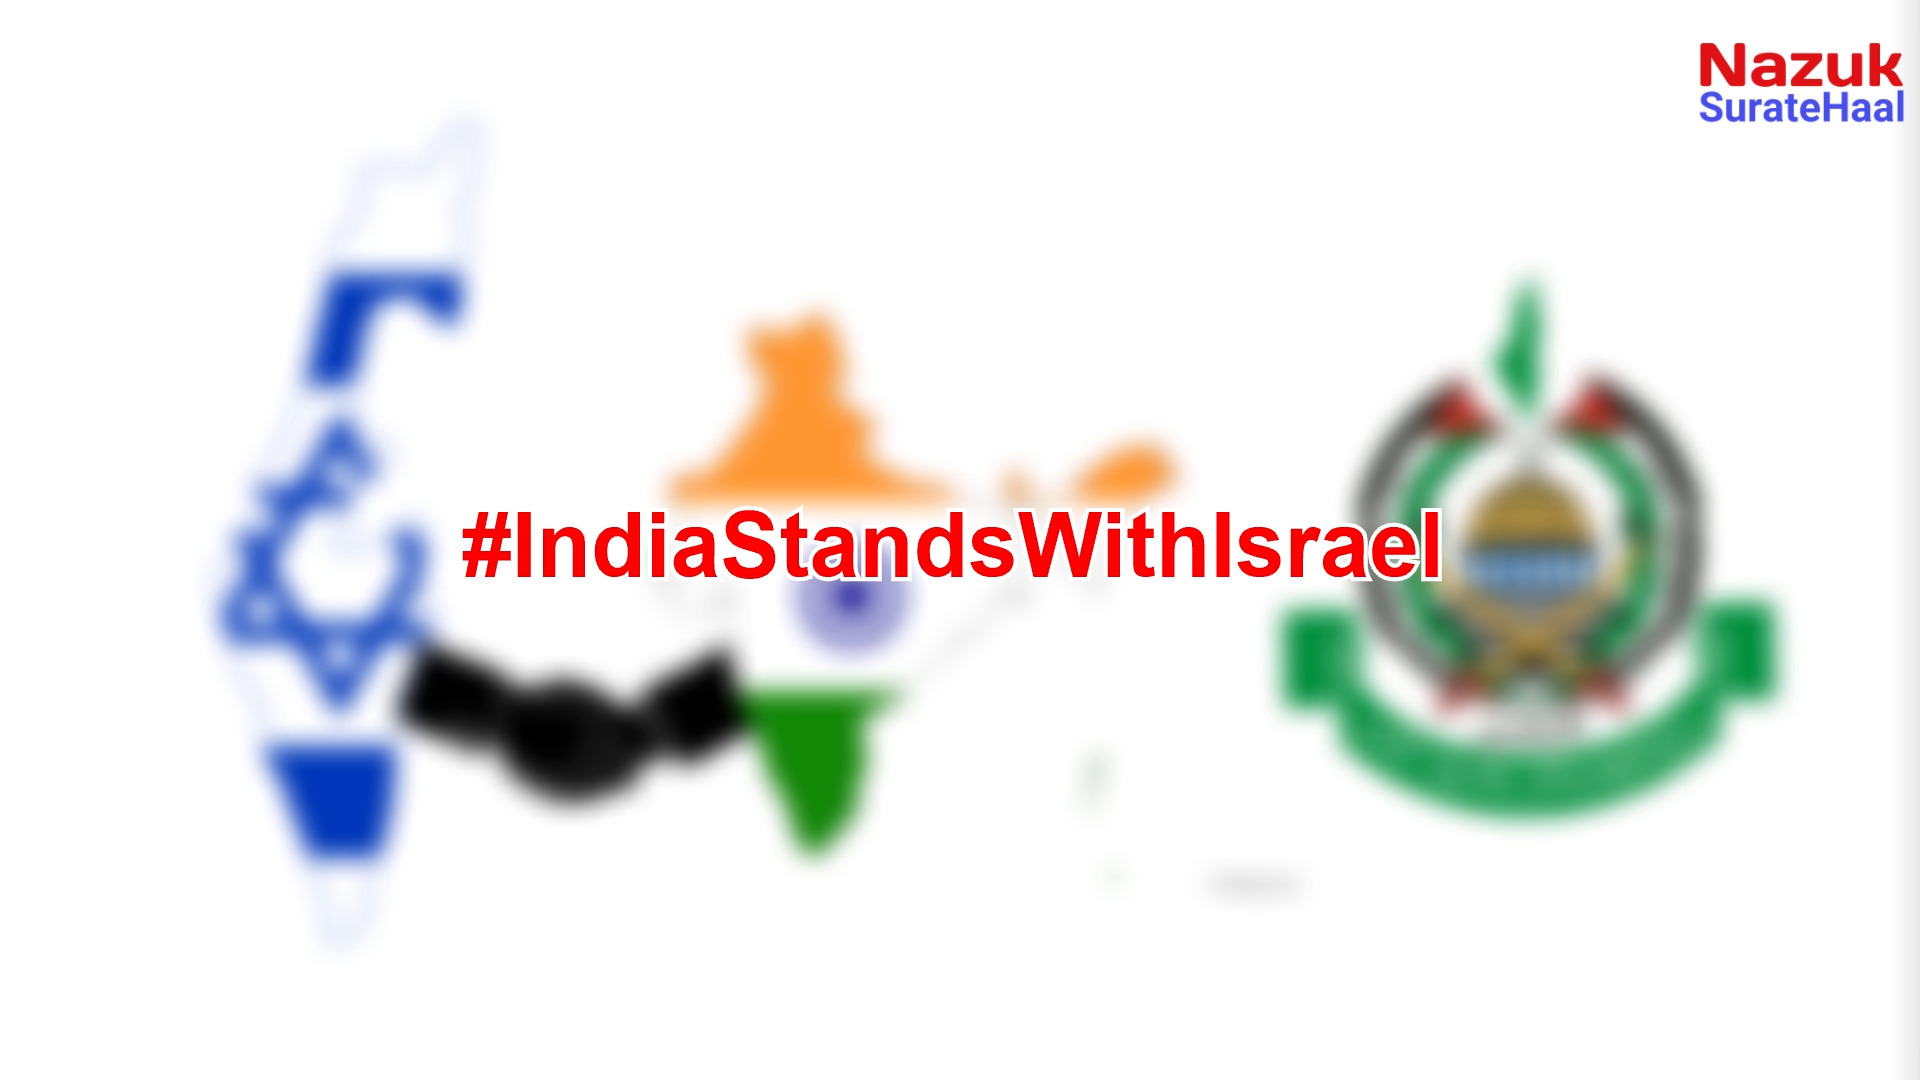 #IndiaStandsWithIsrael was trending on twitter